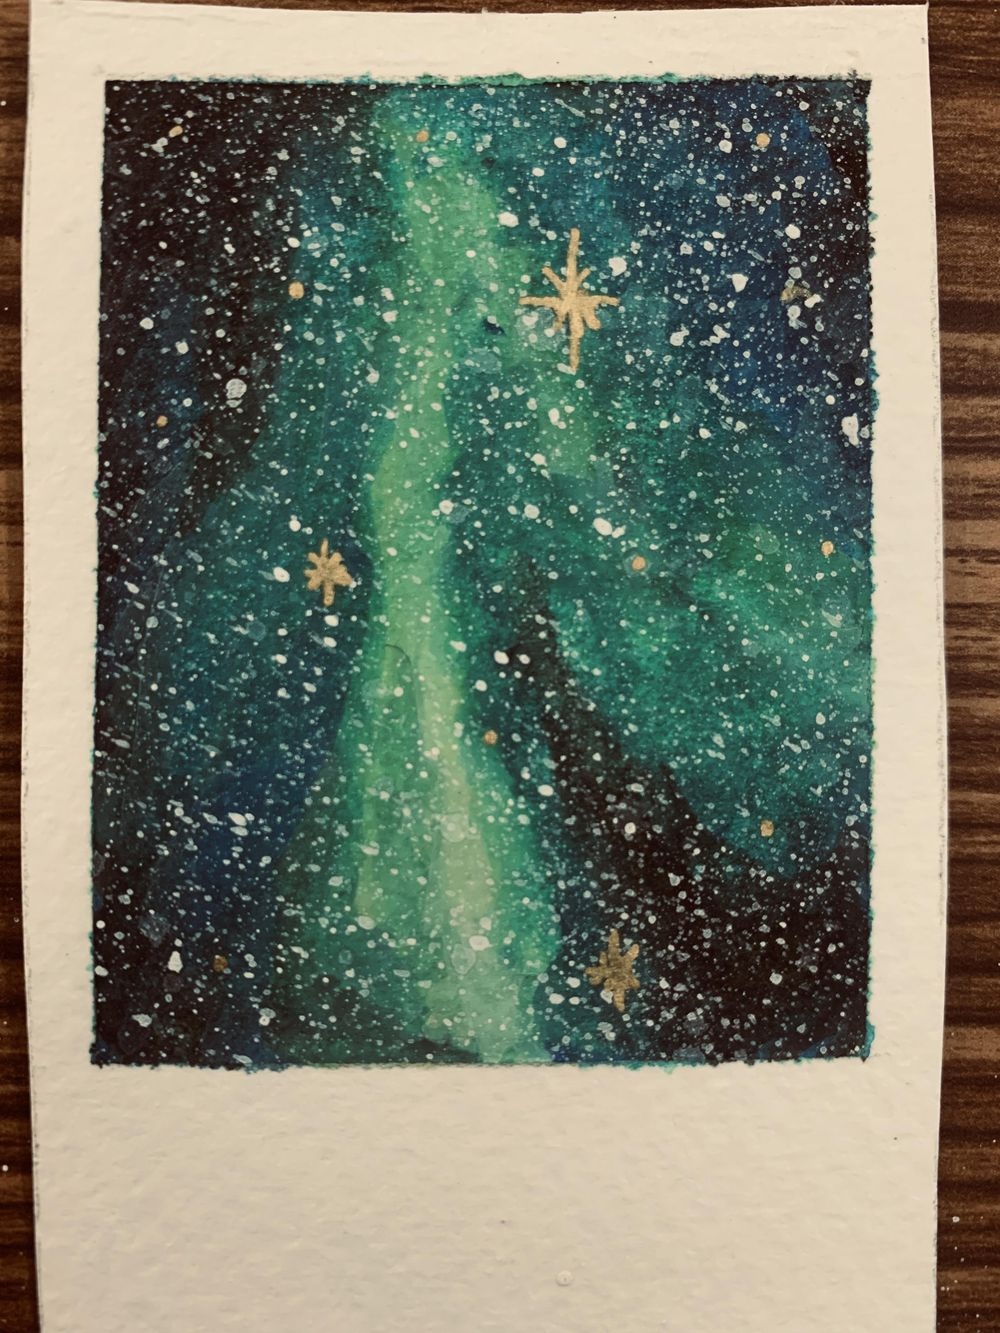 Galaxies - image 1 - student project